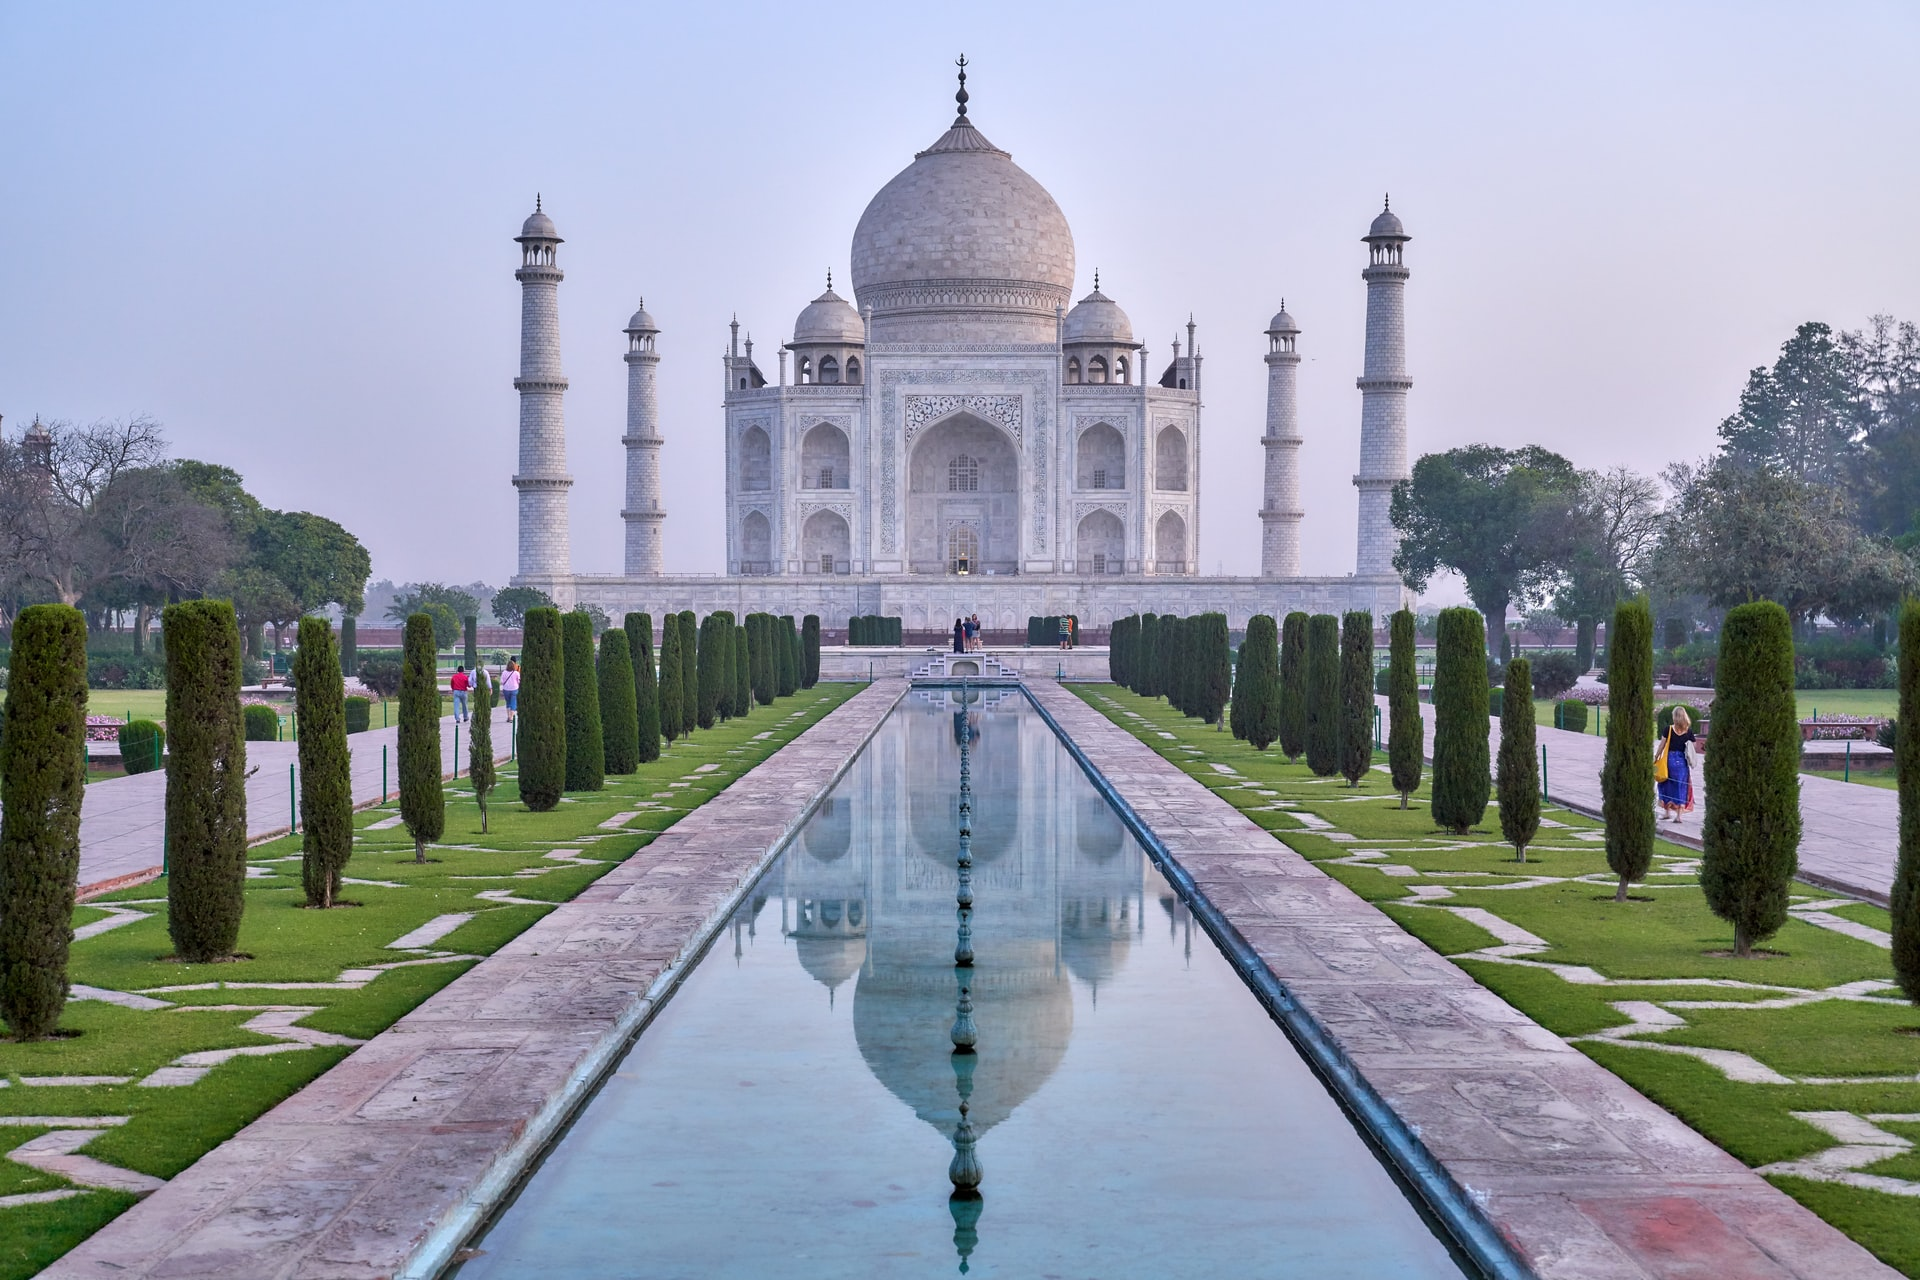 In the image, the Taj Mahal is the centrepiece in the background against a light blue sky. In front of the Taj Mahal is a long, narrow pond that is lined with trees either side.